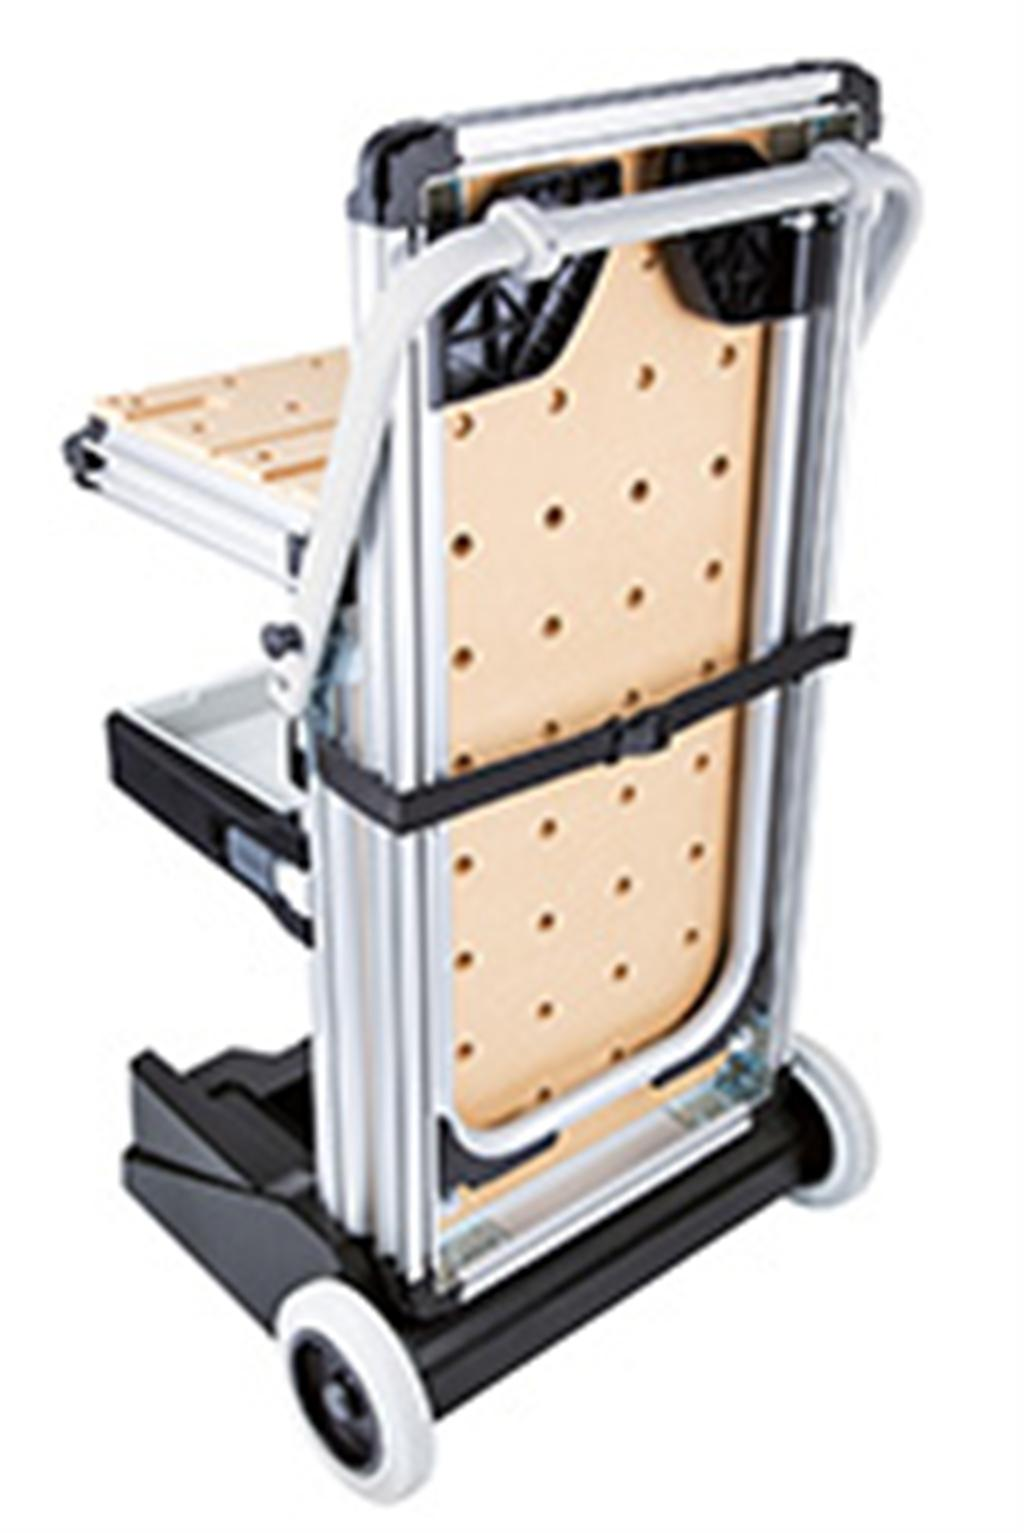 systainer® and table can be securely attached to the base. With a total